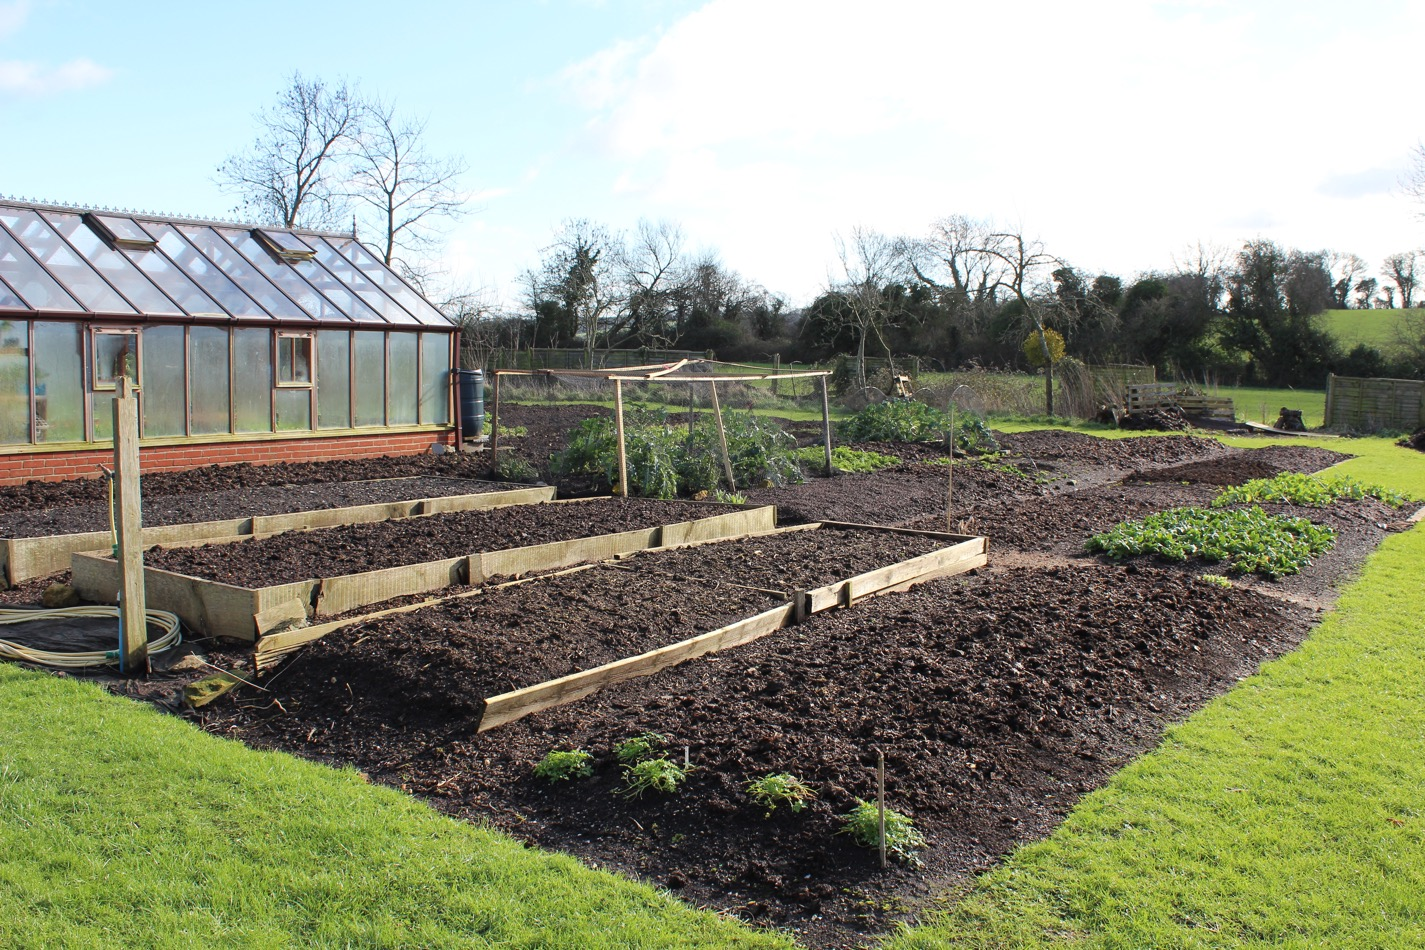 No dig beds at Homeacres, winter-mulched with compost